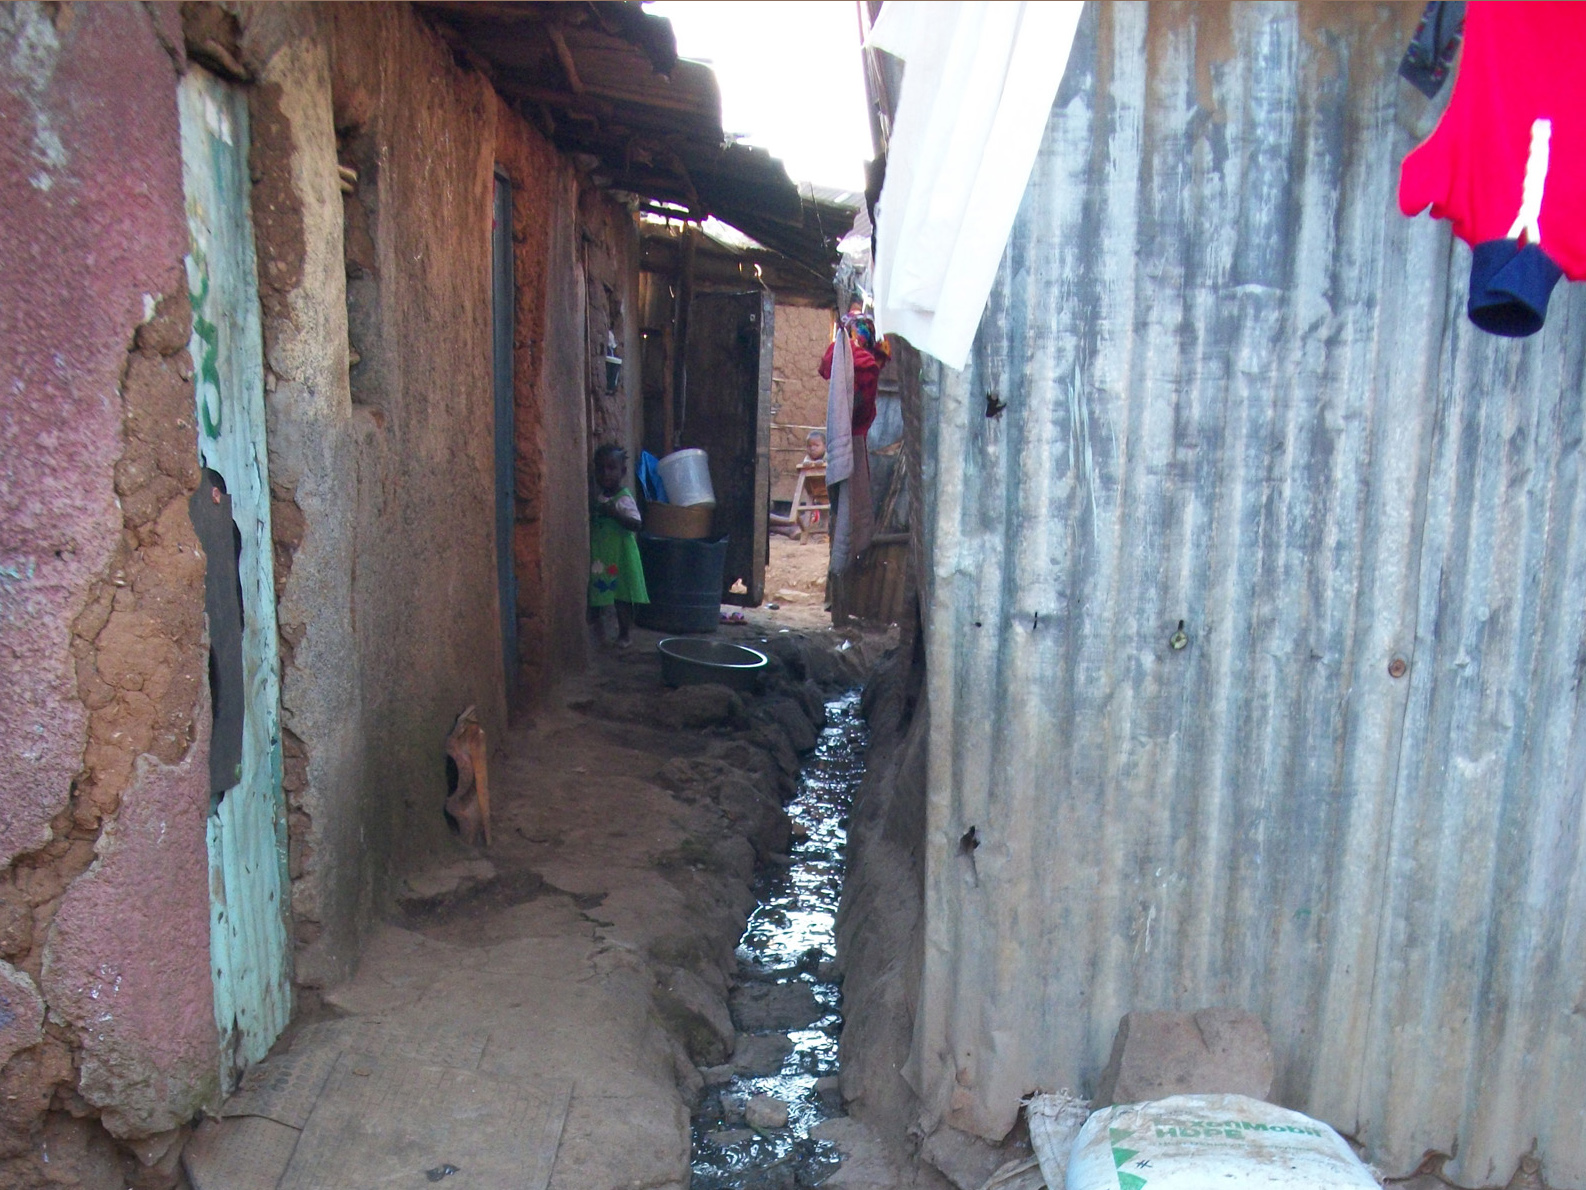 Clogged drainage channels in the sprawling Korogocho slums of Nairobi. Poor waste disposal is an inherent health danger to the residents. The narrow channels empty their contents into the Nairobi River highly polluting it. Such poor waste disposal is a ri